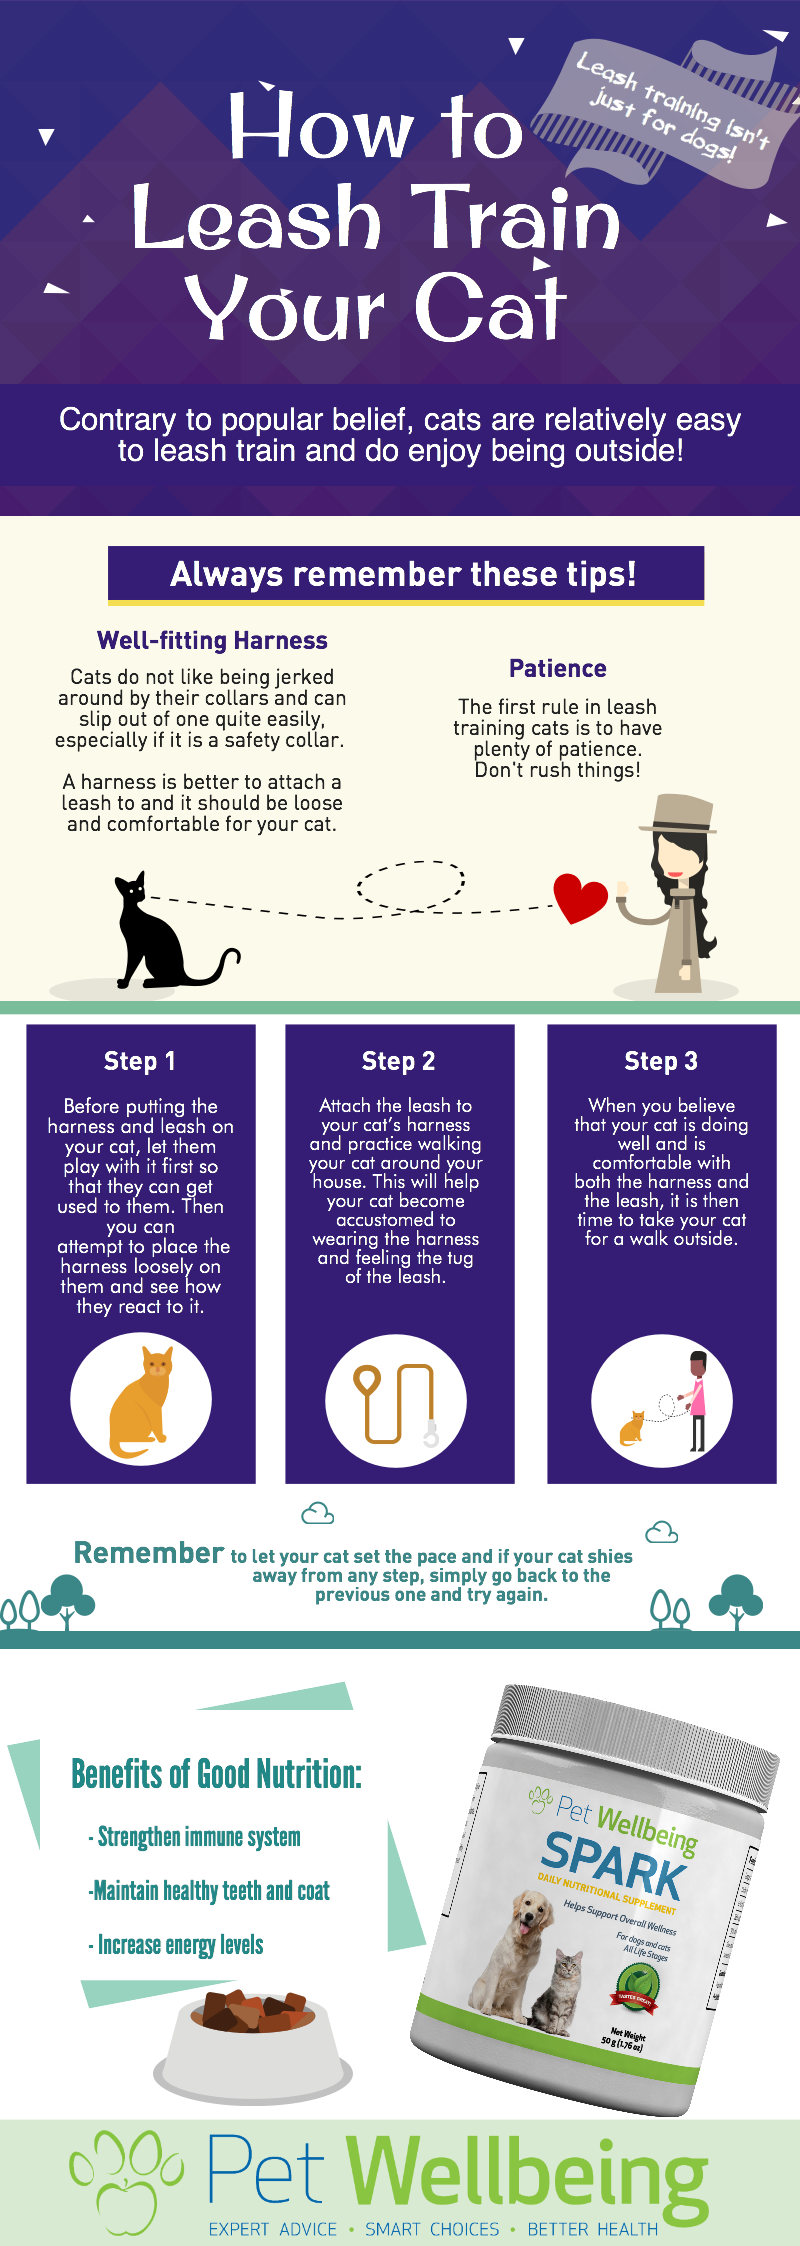 How to Leash Train Your Cat Infographic by Pet